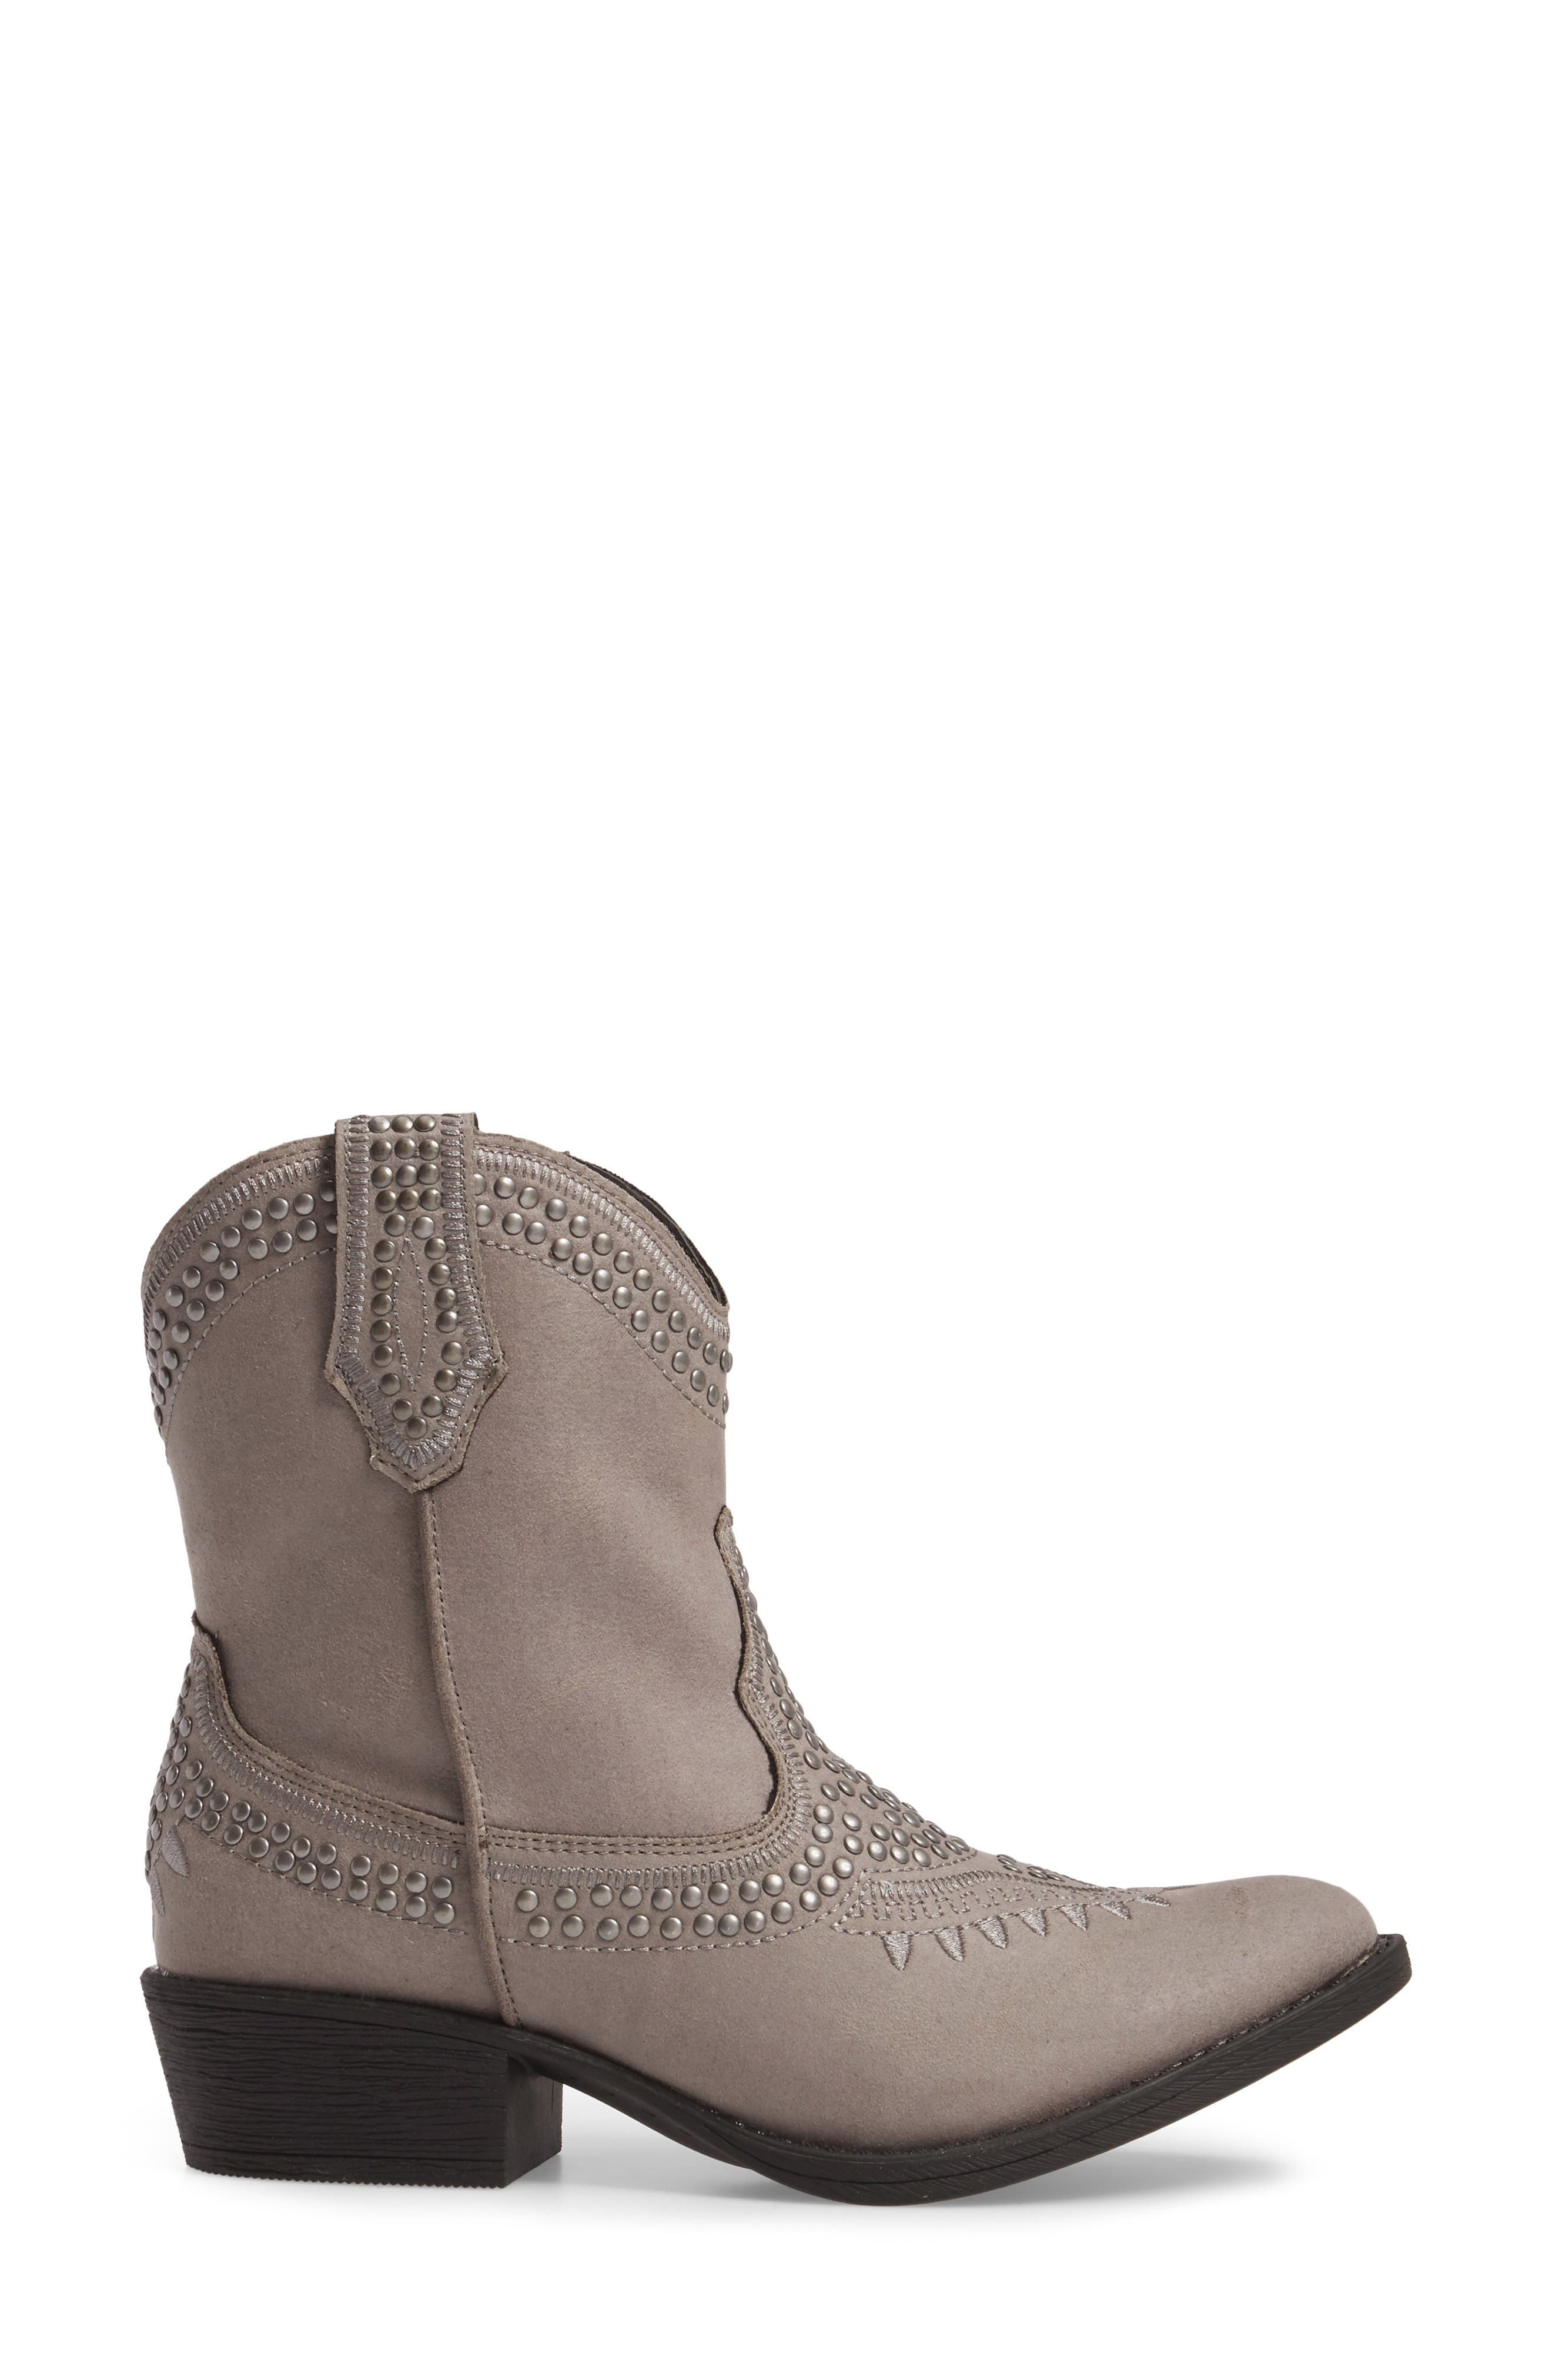 Amour Embellished Western Bootie,                             Alternate thumbnail 3, color,                             023